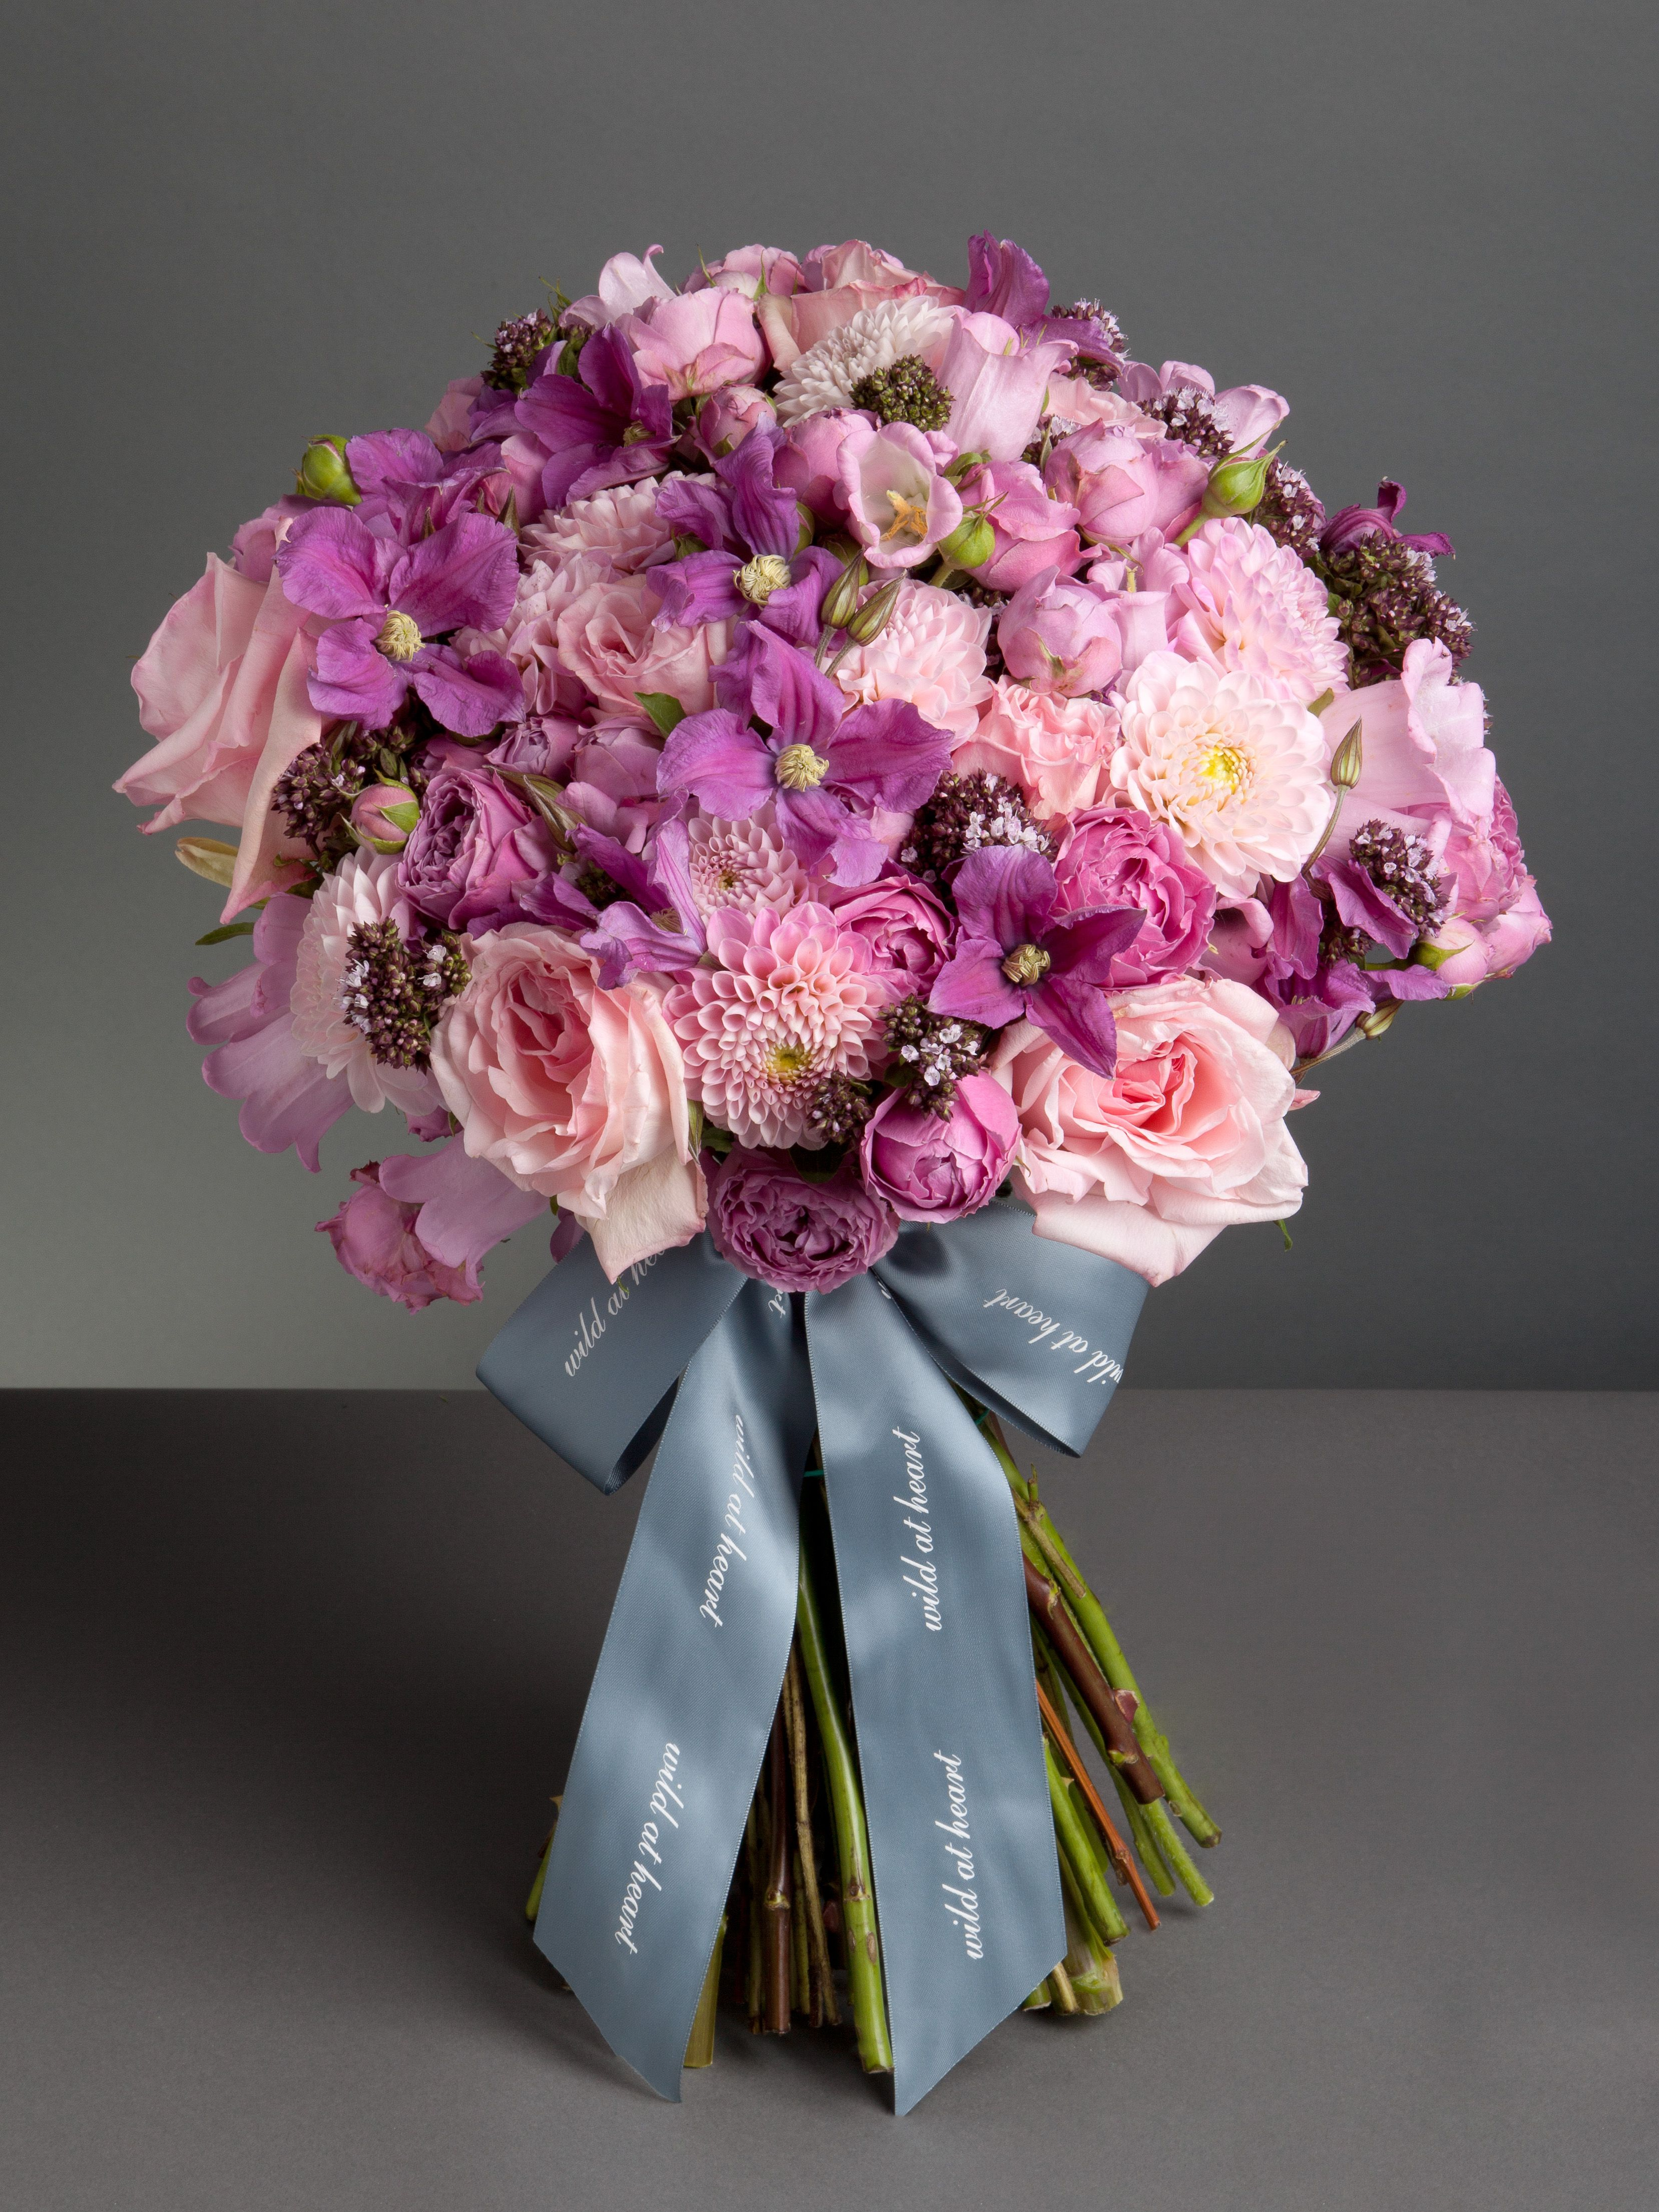 Nationwide delivery available at wildatheart flowers nationwide delivery available at wildatheart fresh flowerspink flowersbeautiful flowersbouquet flowersflower packaginghand izmirmasajfo